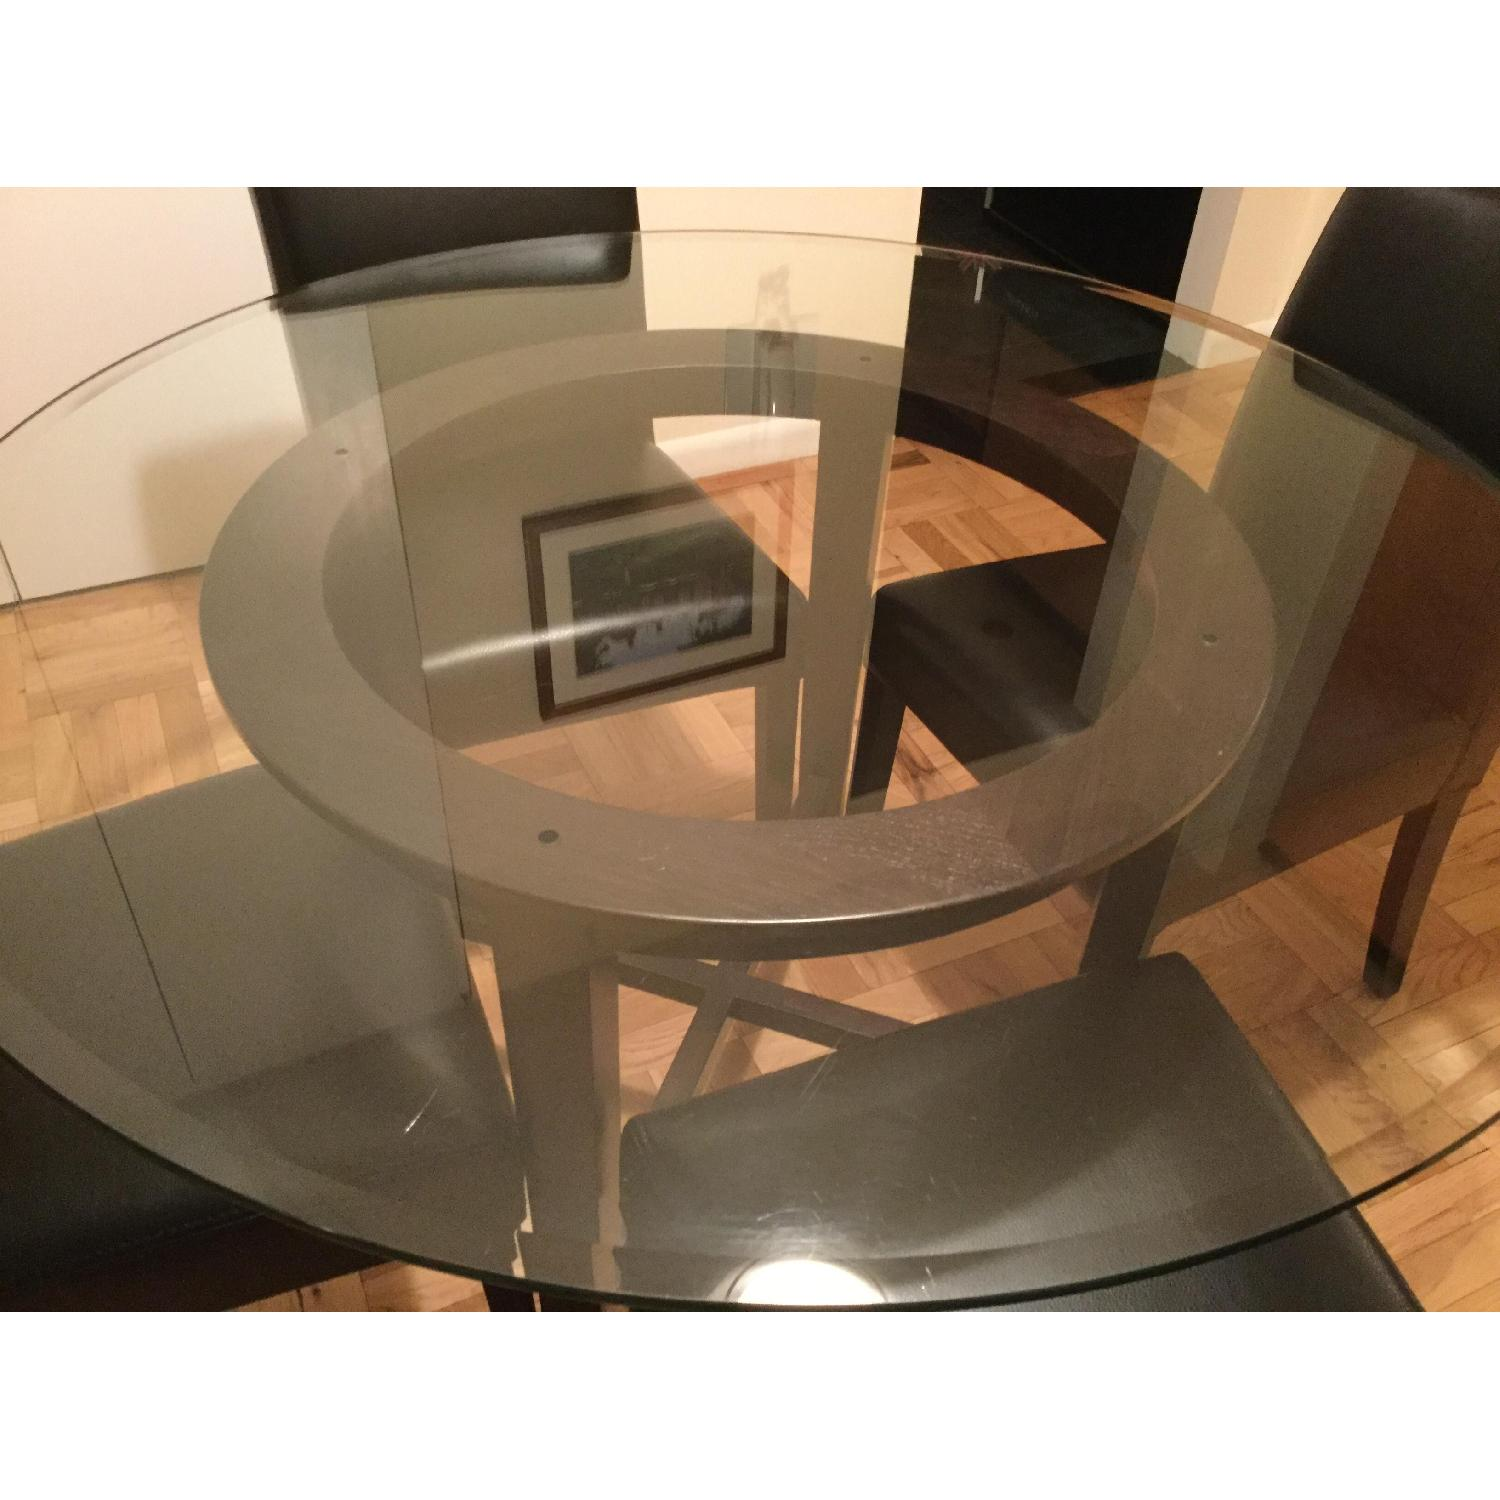 Crate & Barrel Glass Dining Table w/ 4 Black Leather Chairs - image-4